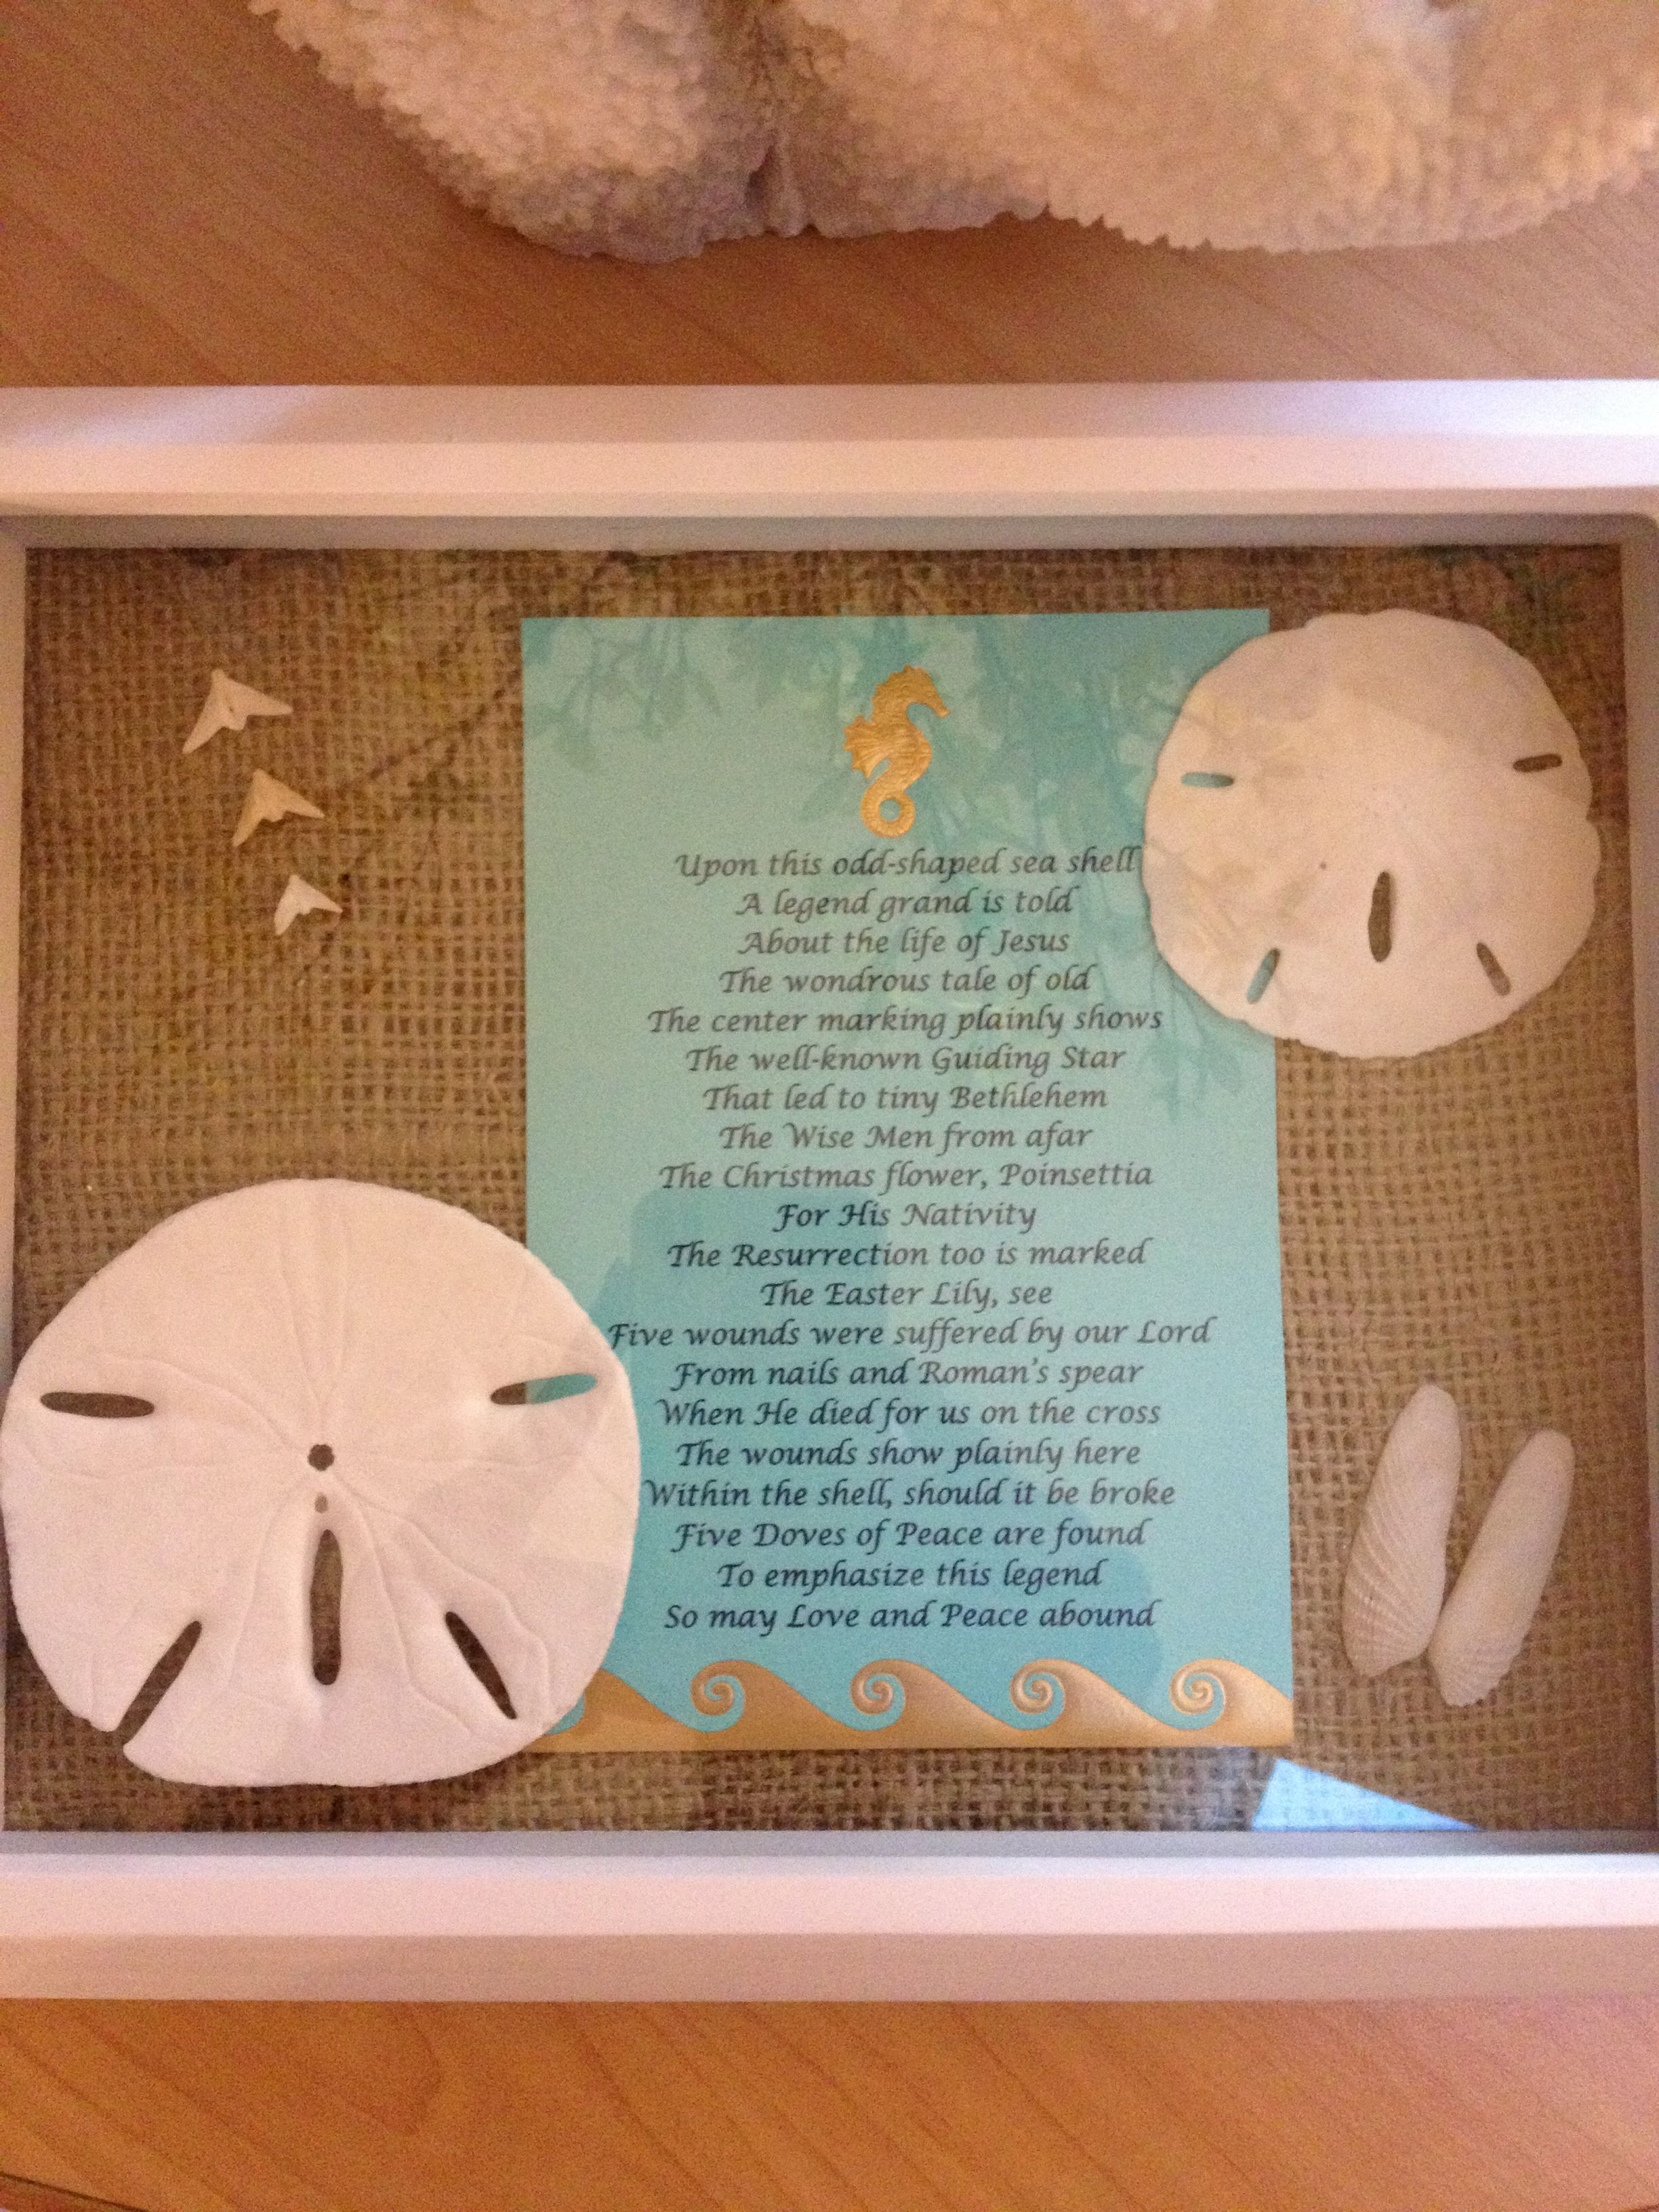 Mother S Day Gift I Made For My Mom Included Angel Wing Shell And Doves From Inside A Sand Dollar W The Sand Dollar Decor Sand Dollar Craft Seashell Projects